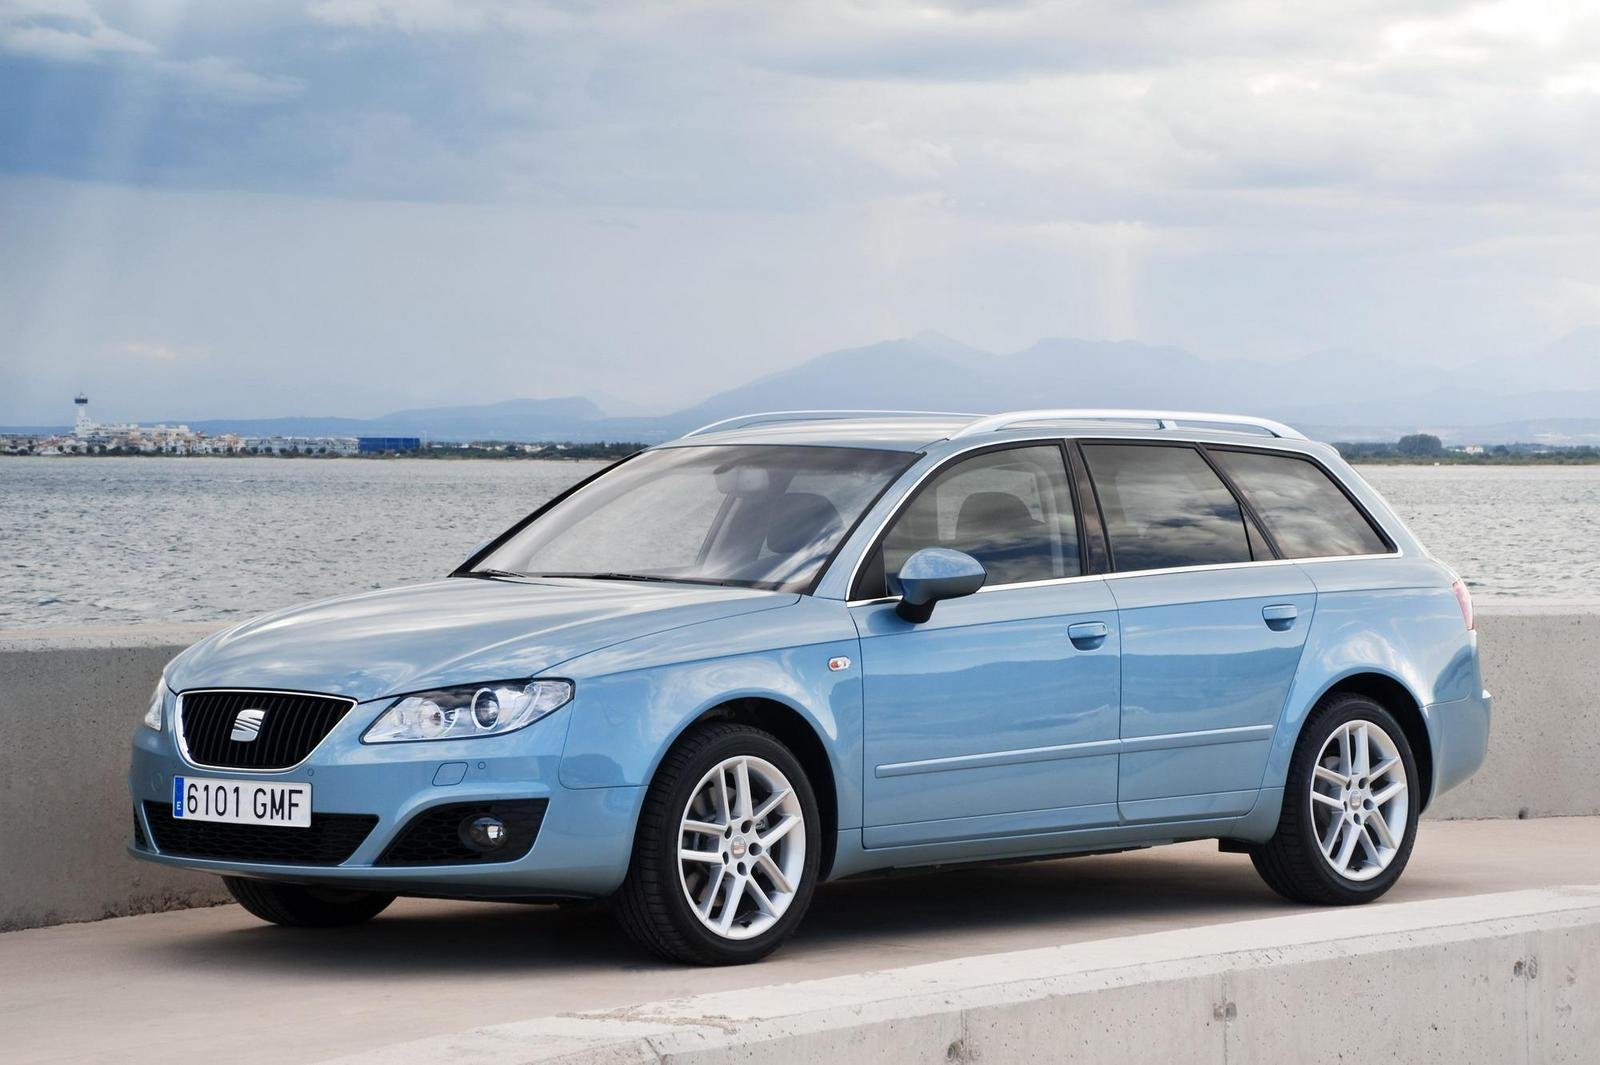 2010 seat exeo sport tourer picture 303934 car review top speed. Black Bedroom Furniture Sets. Home Design Ideas